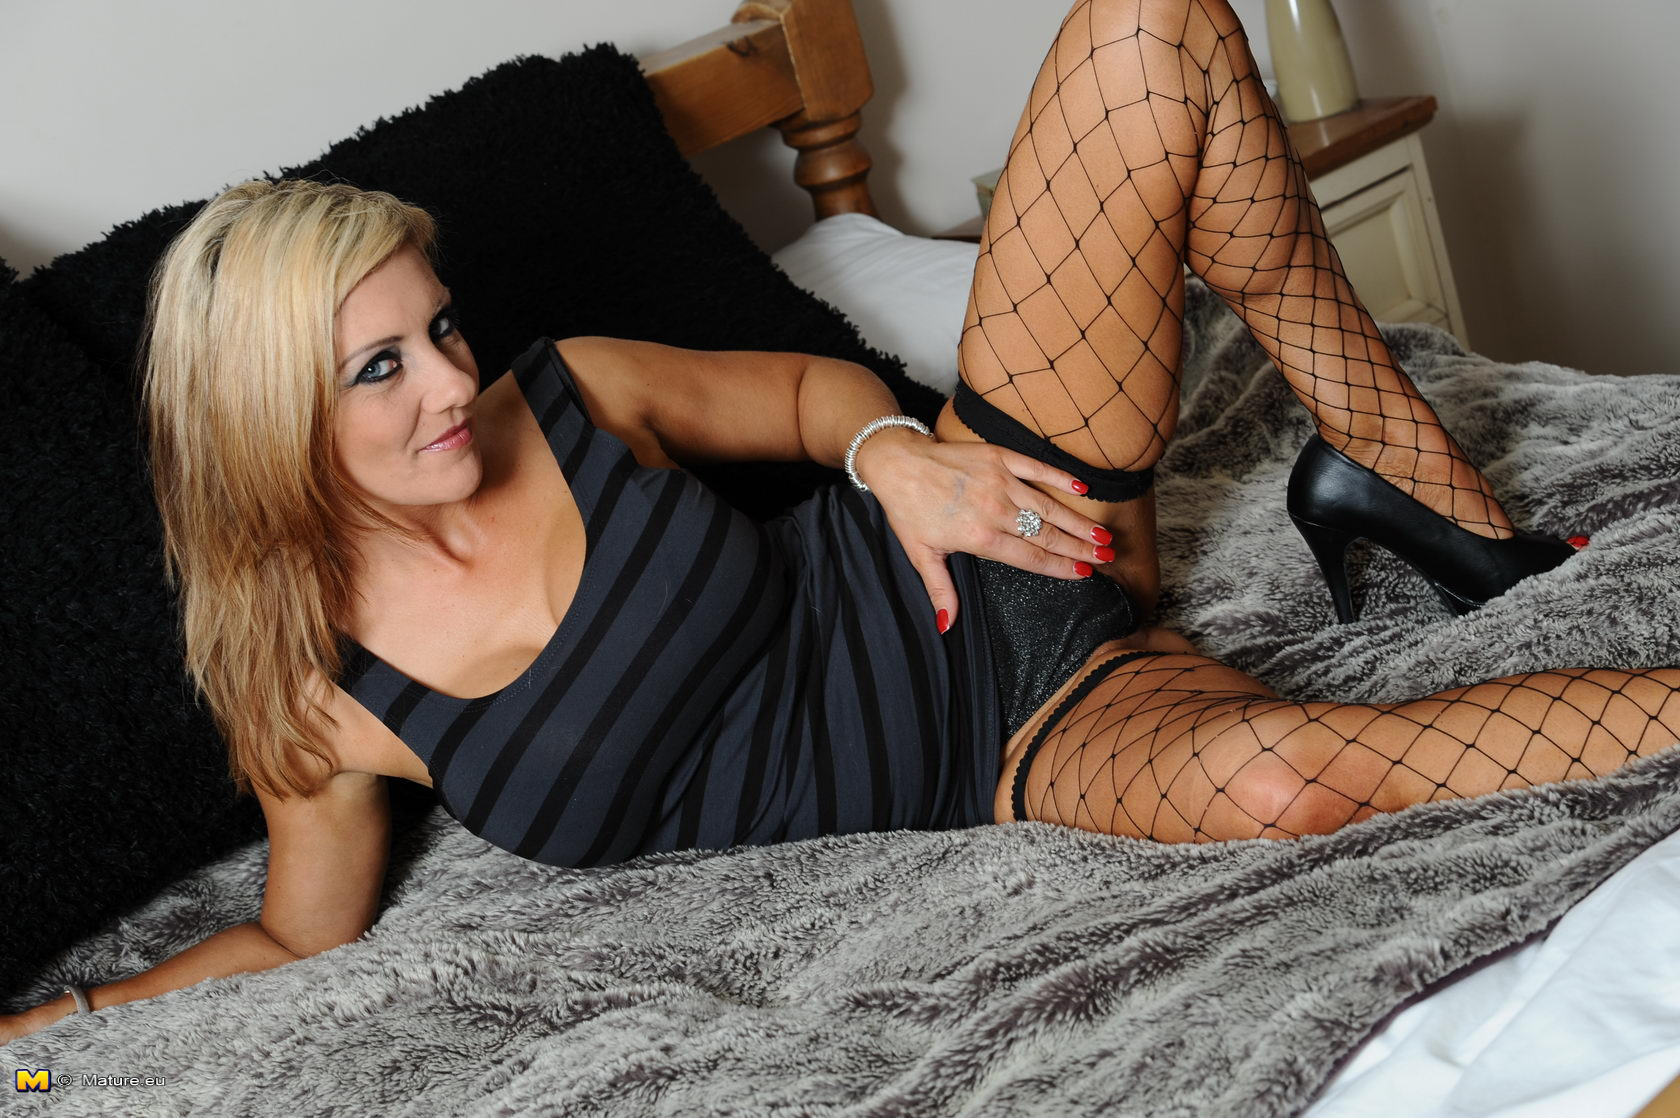 Fishnet stocking milf